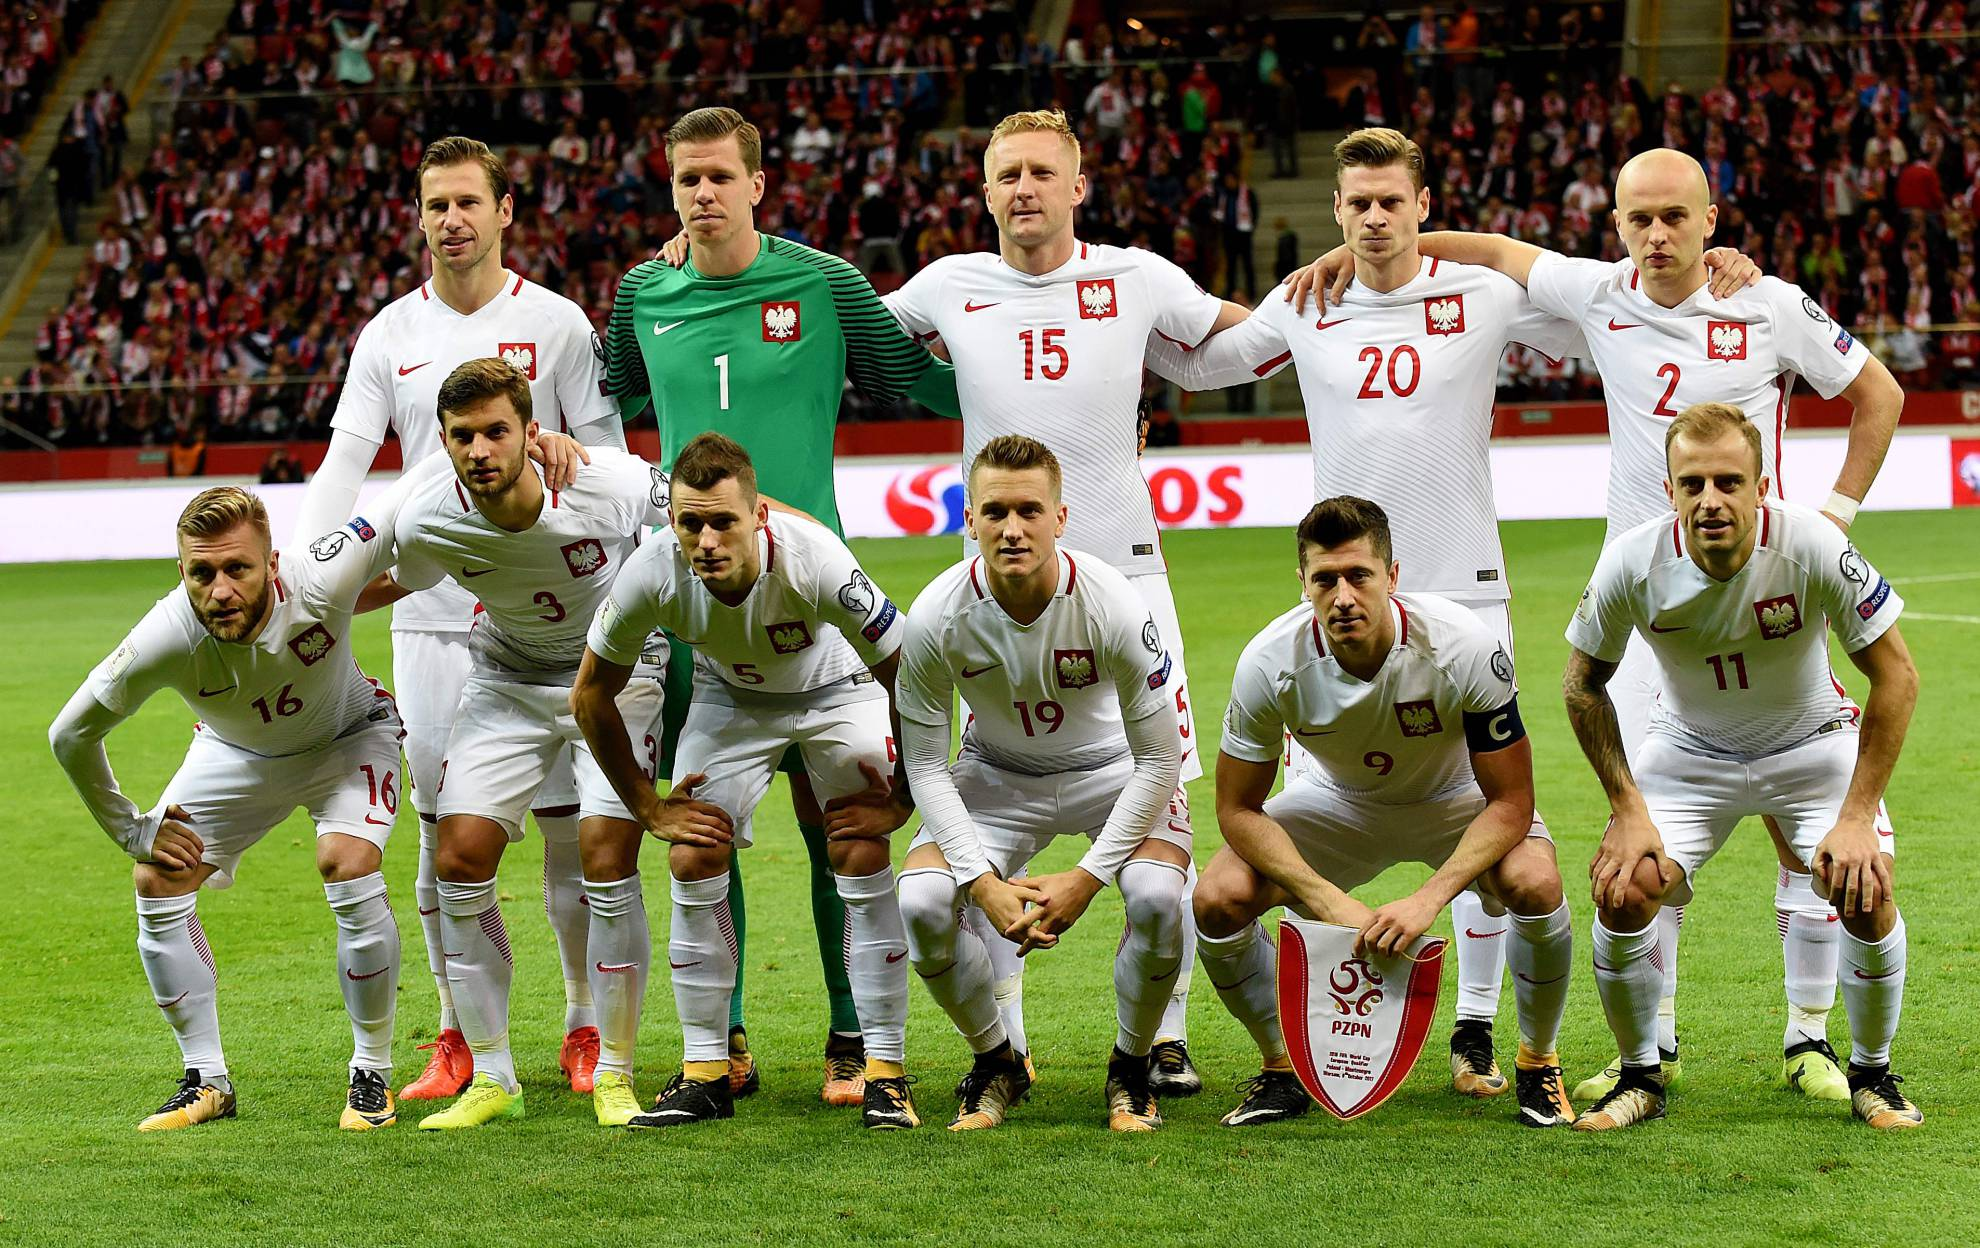 FIFA fines Poland for political and offensive' World Cup banner